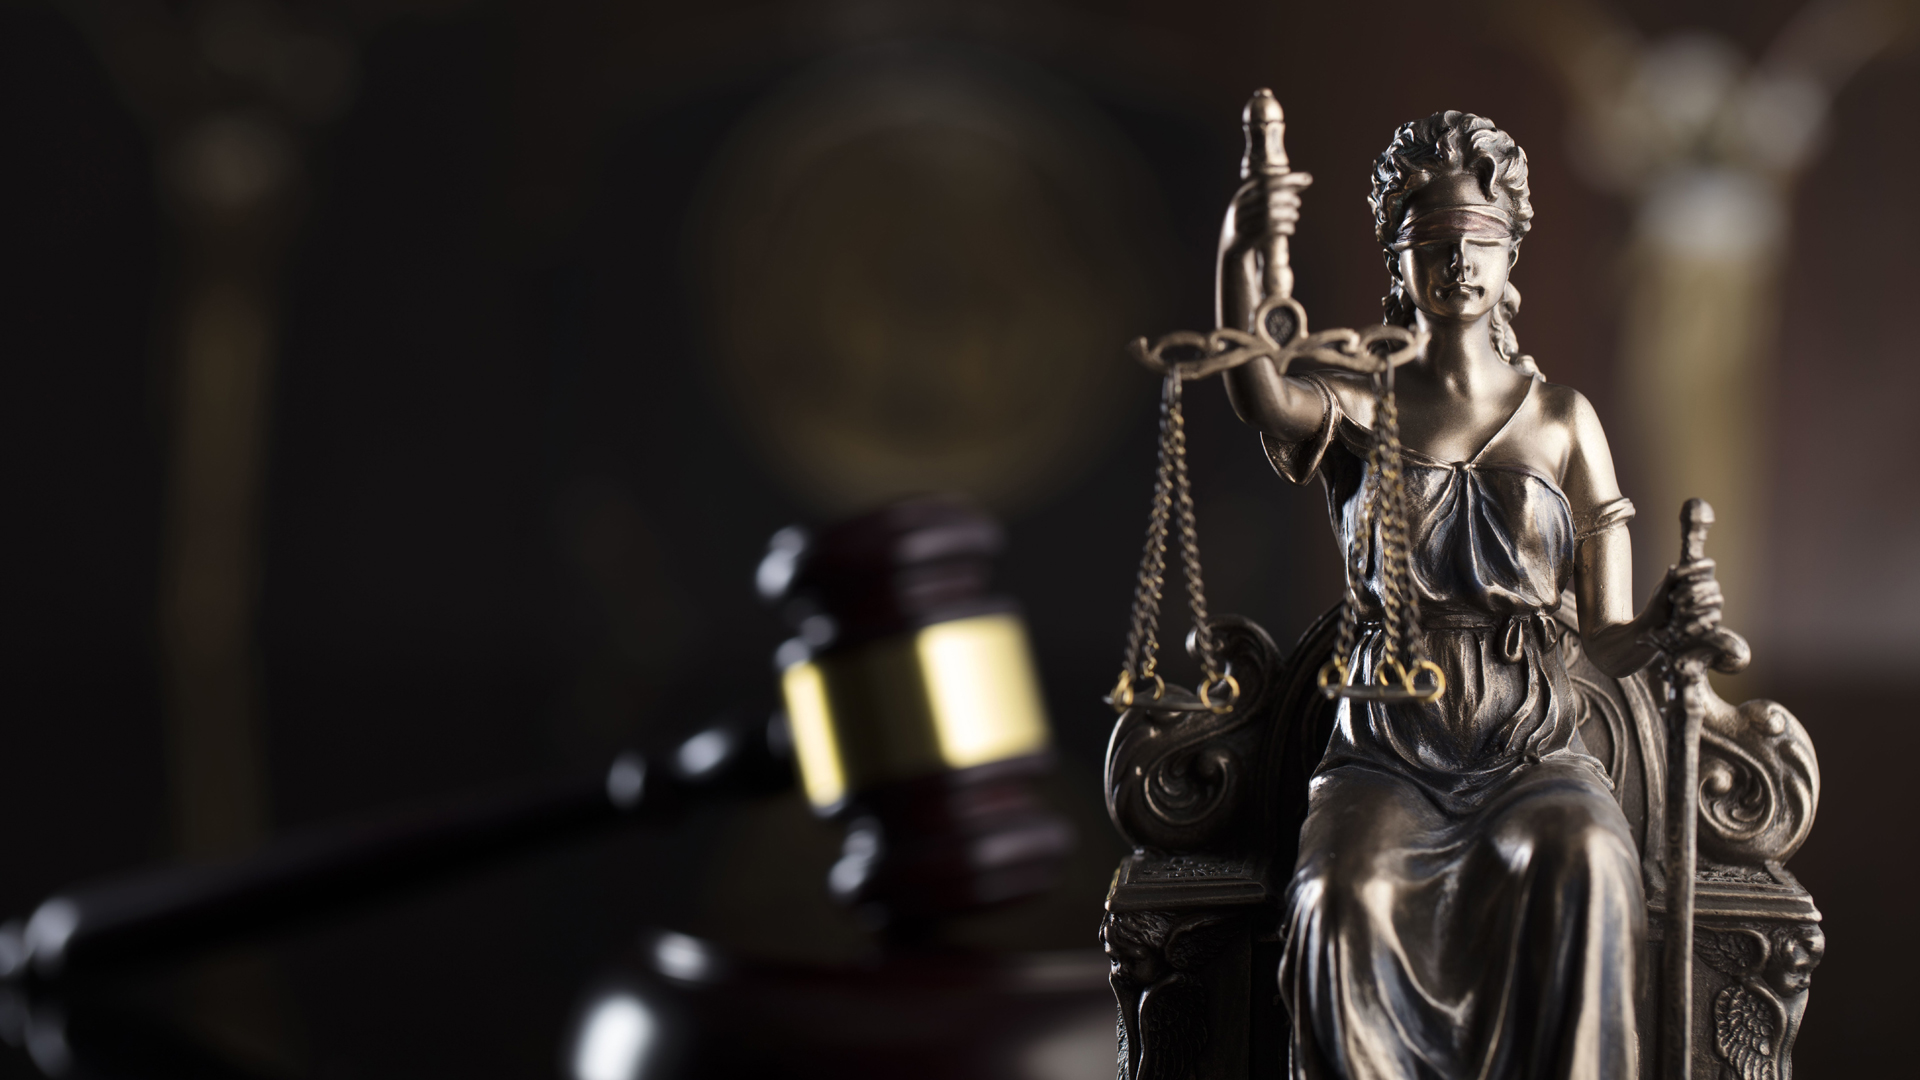 Lady Justice is shown blindfolded on a judge's desk in a file image. (Credit: iStock / Getty Images Plus)